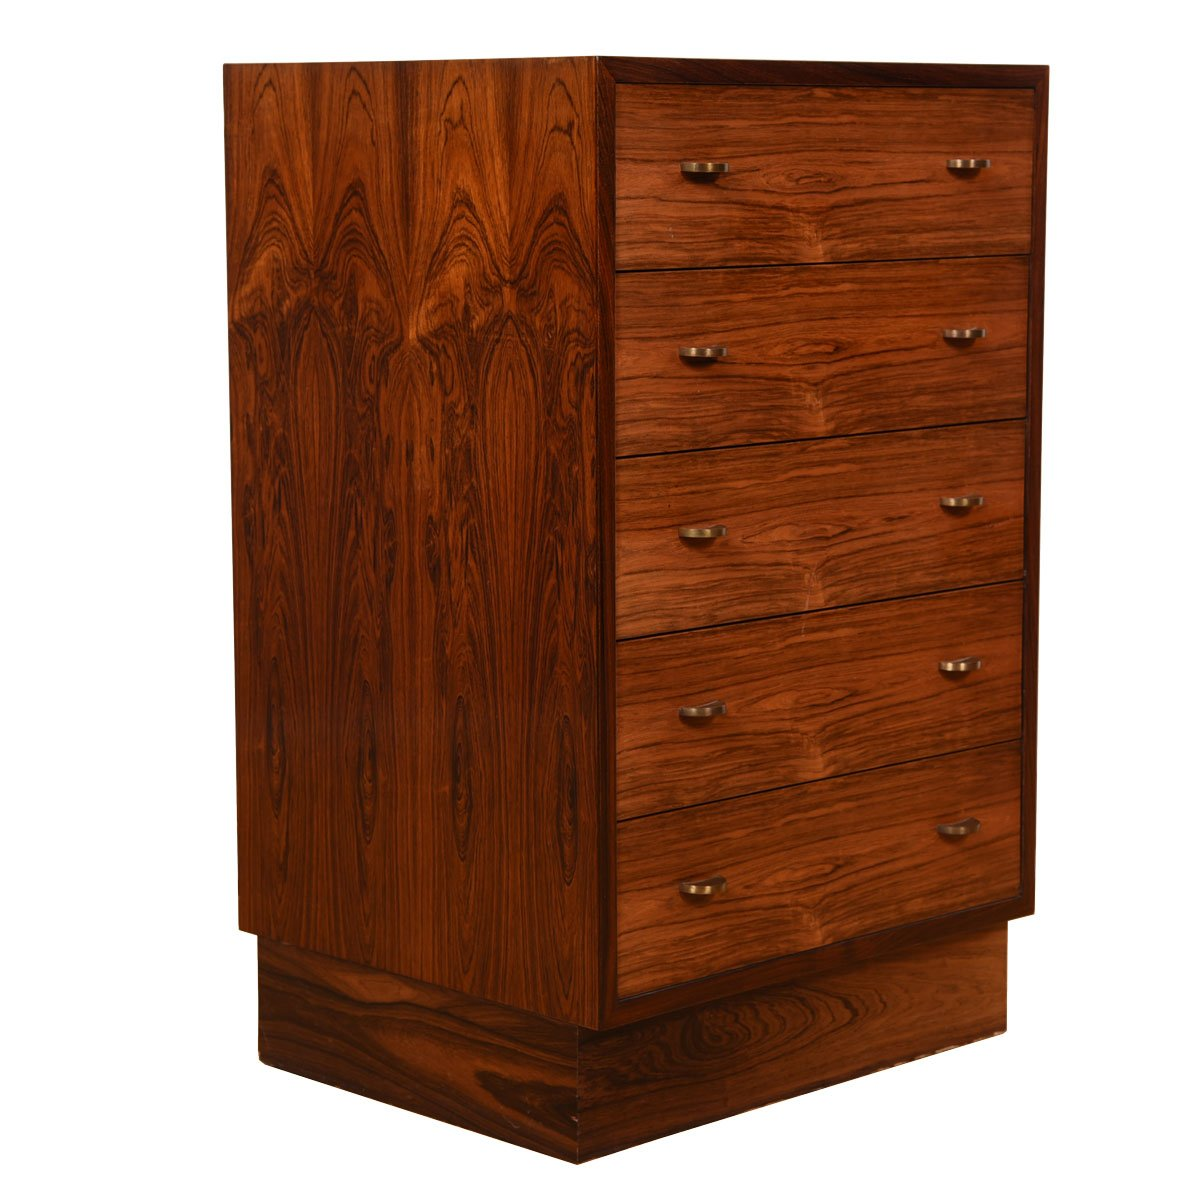 Danish Modern Rosewood Petite Chest of Drawers